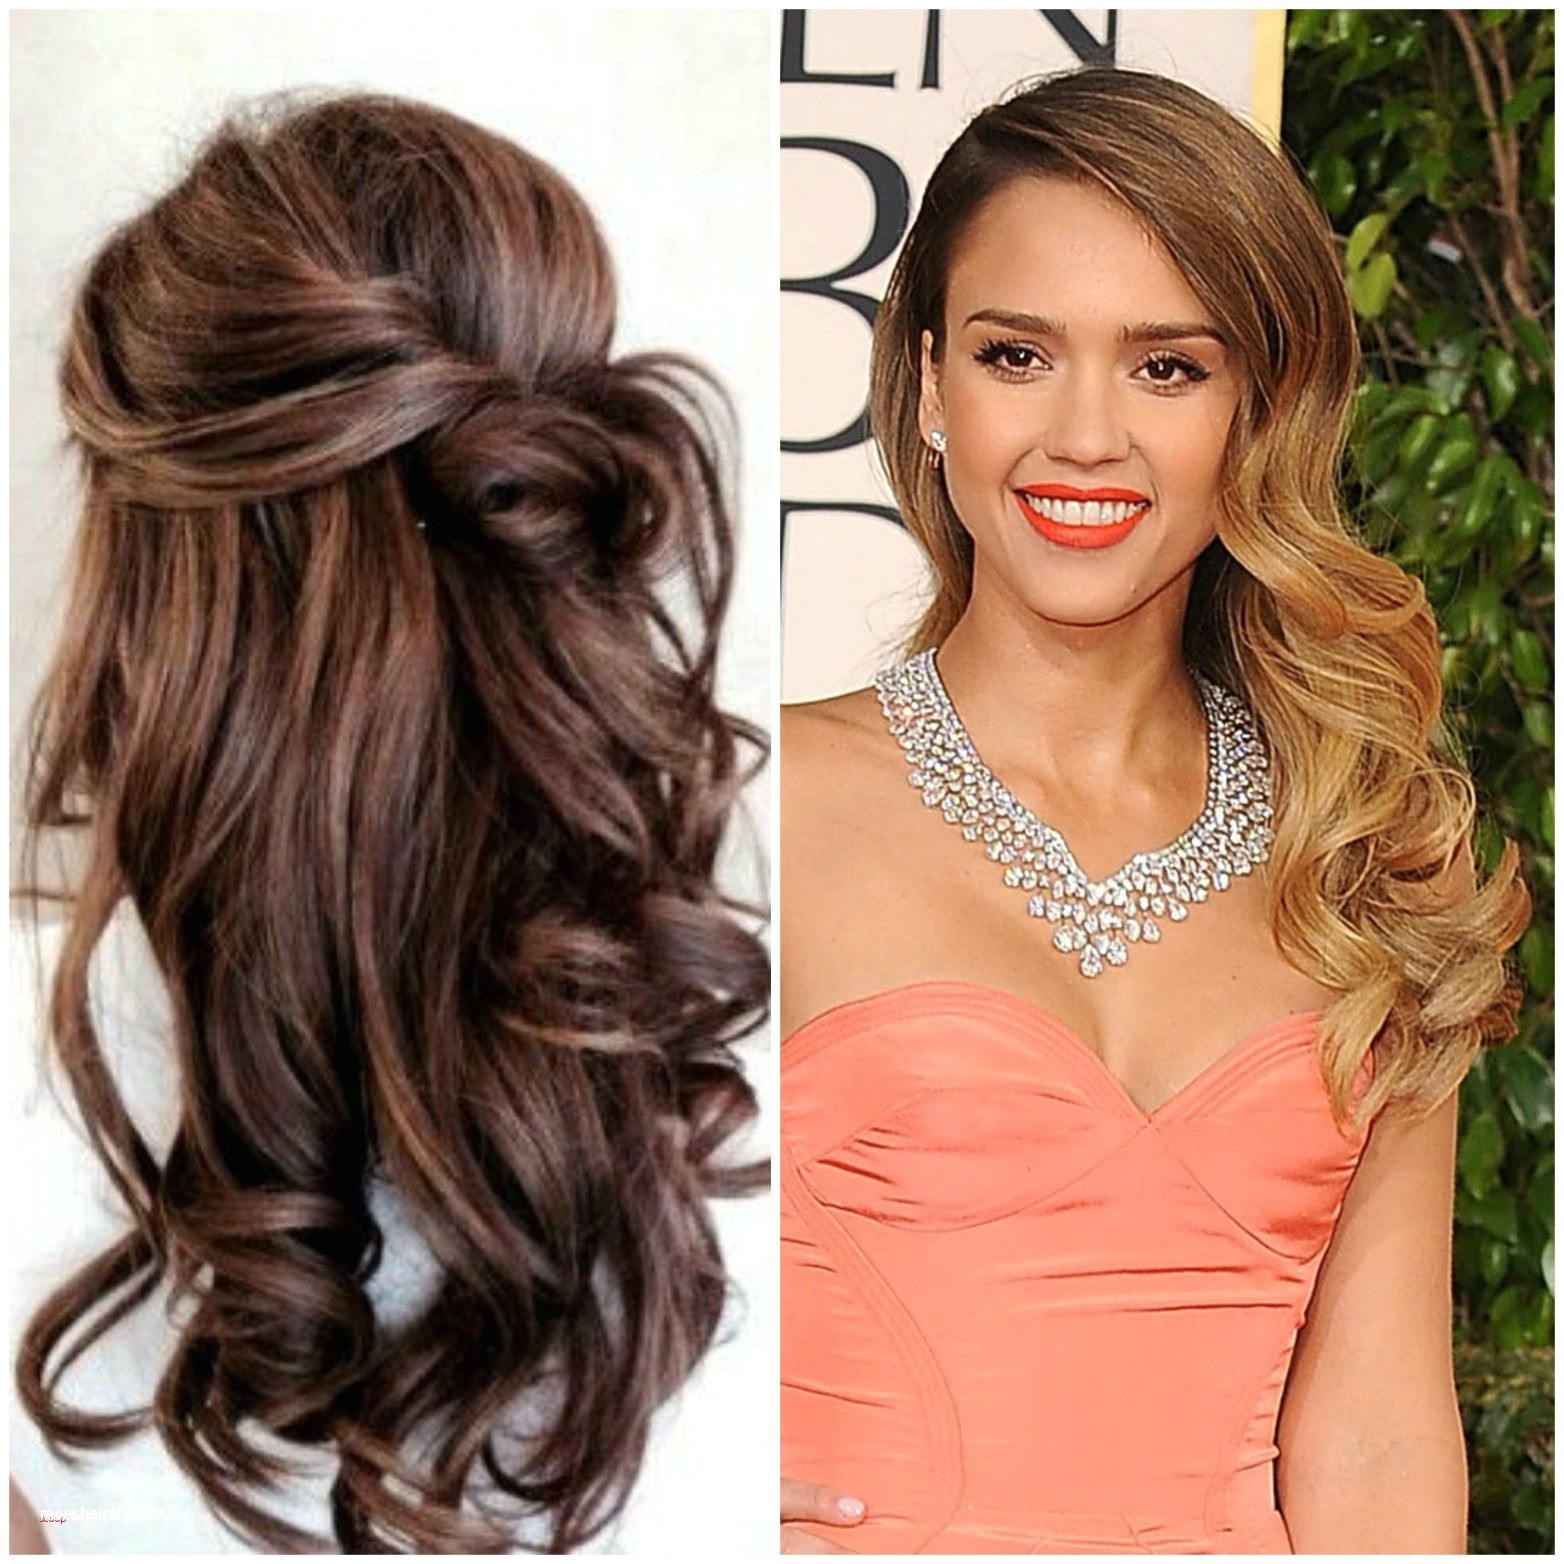 Hairstyles For Long Hair 2015 Luxury I Pinimg 1200x 0d 60 8a Furthermore Human Hair Color Inspirational Haircut for Round Fat Face Girl